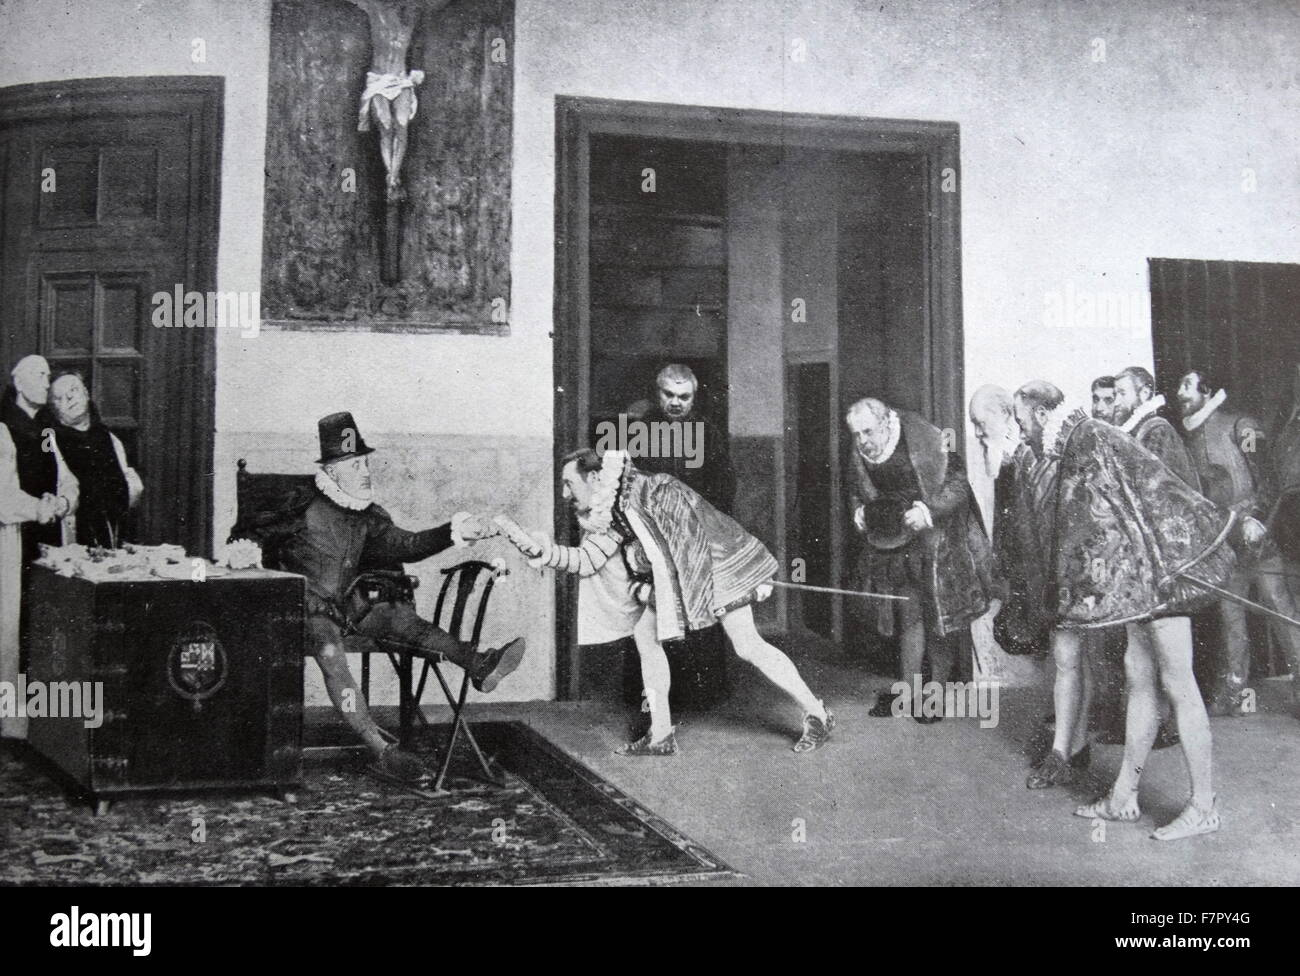 King Philip II (Felipe II) of Spain, receives ambassadors from Flanders, prior to his invasion of the Netherlands Stock Photo